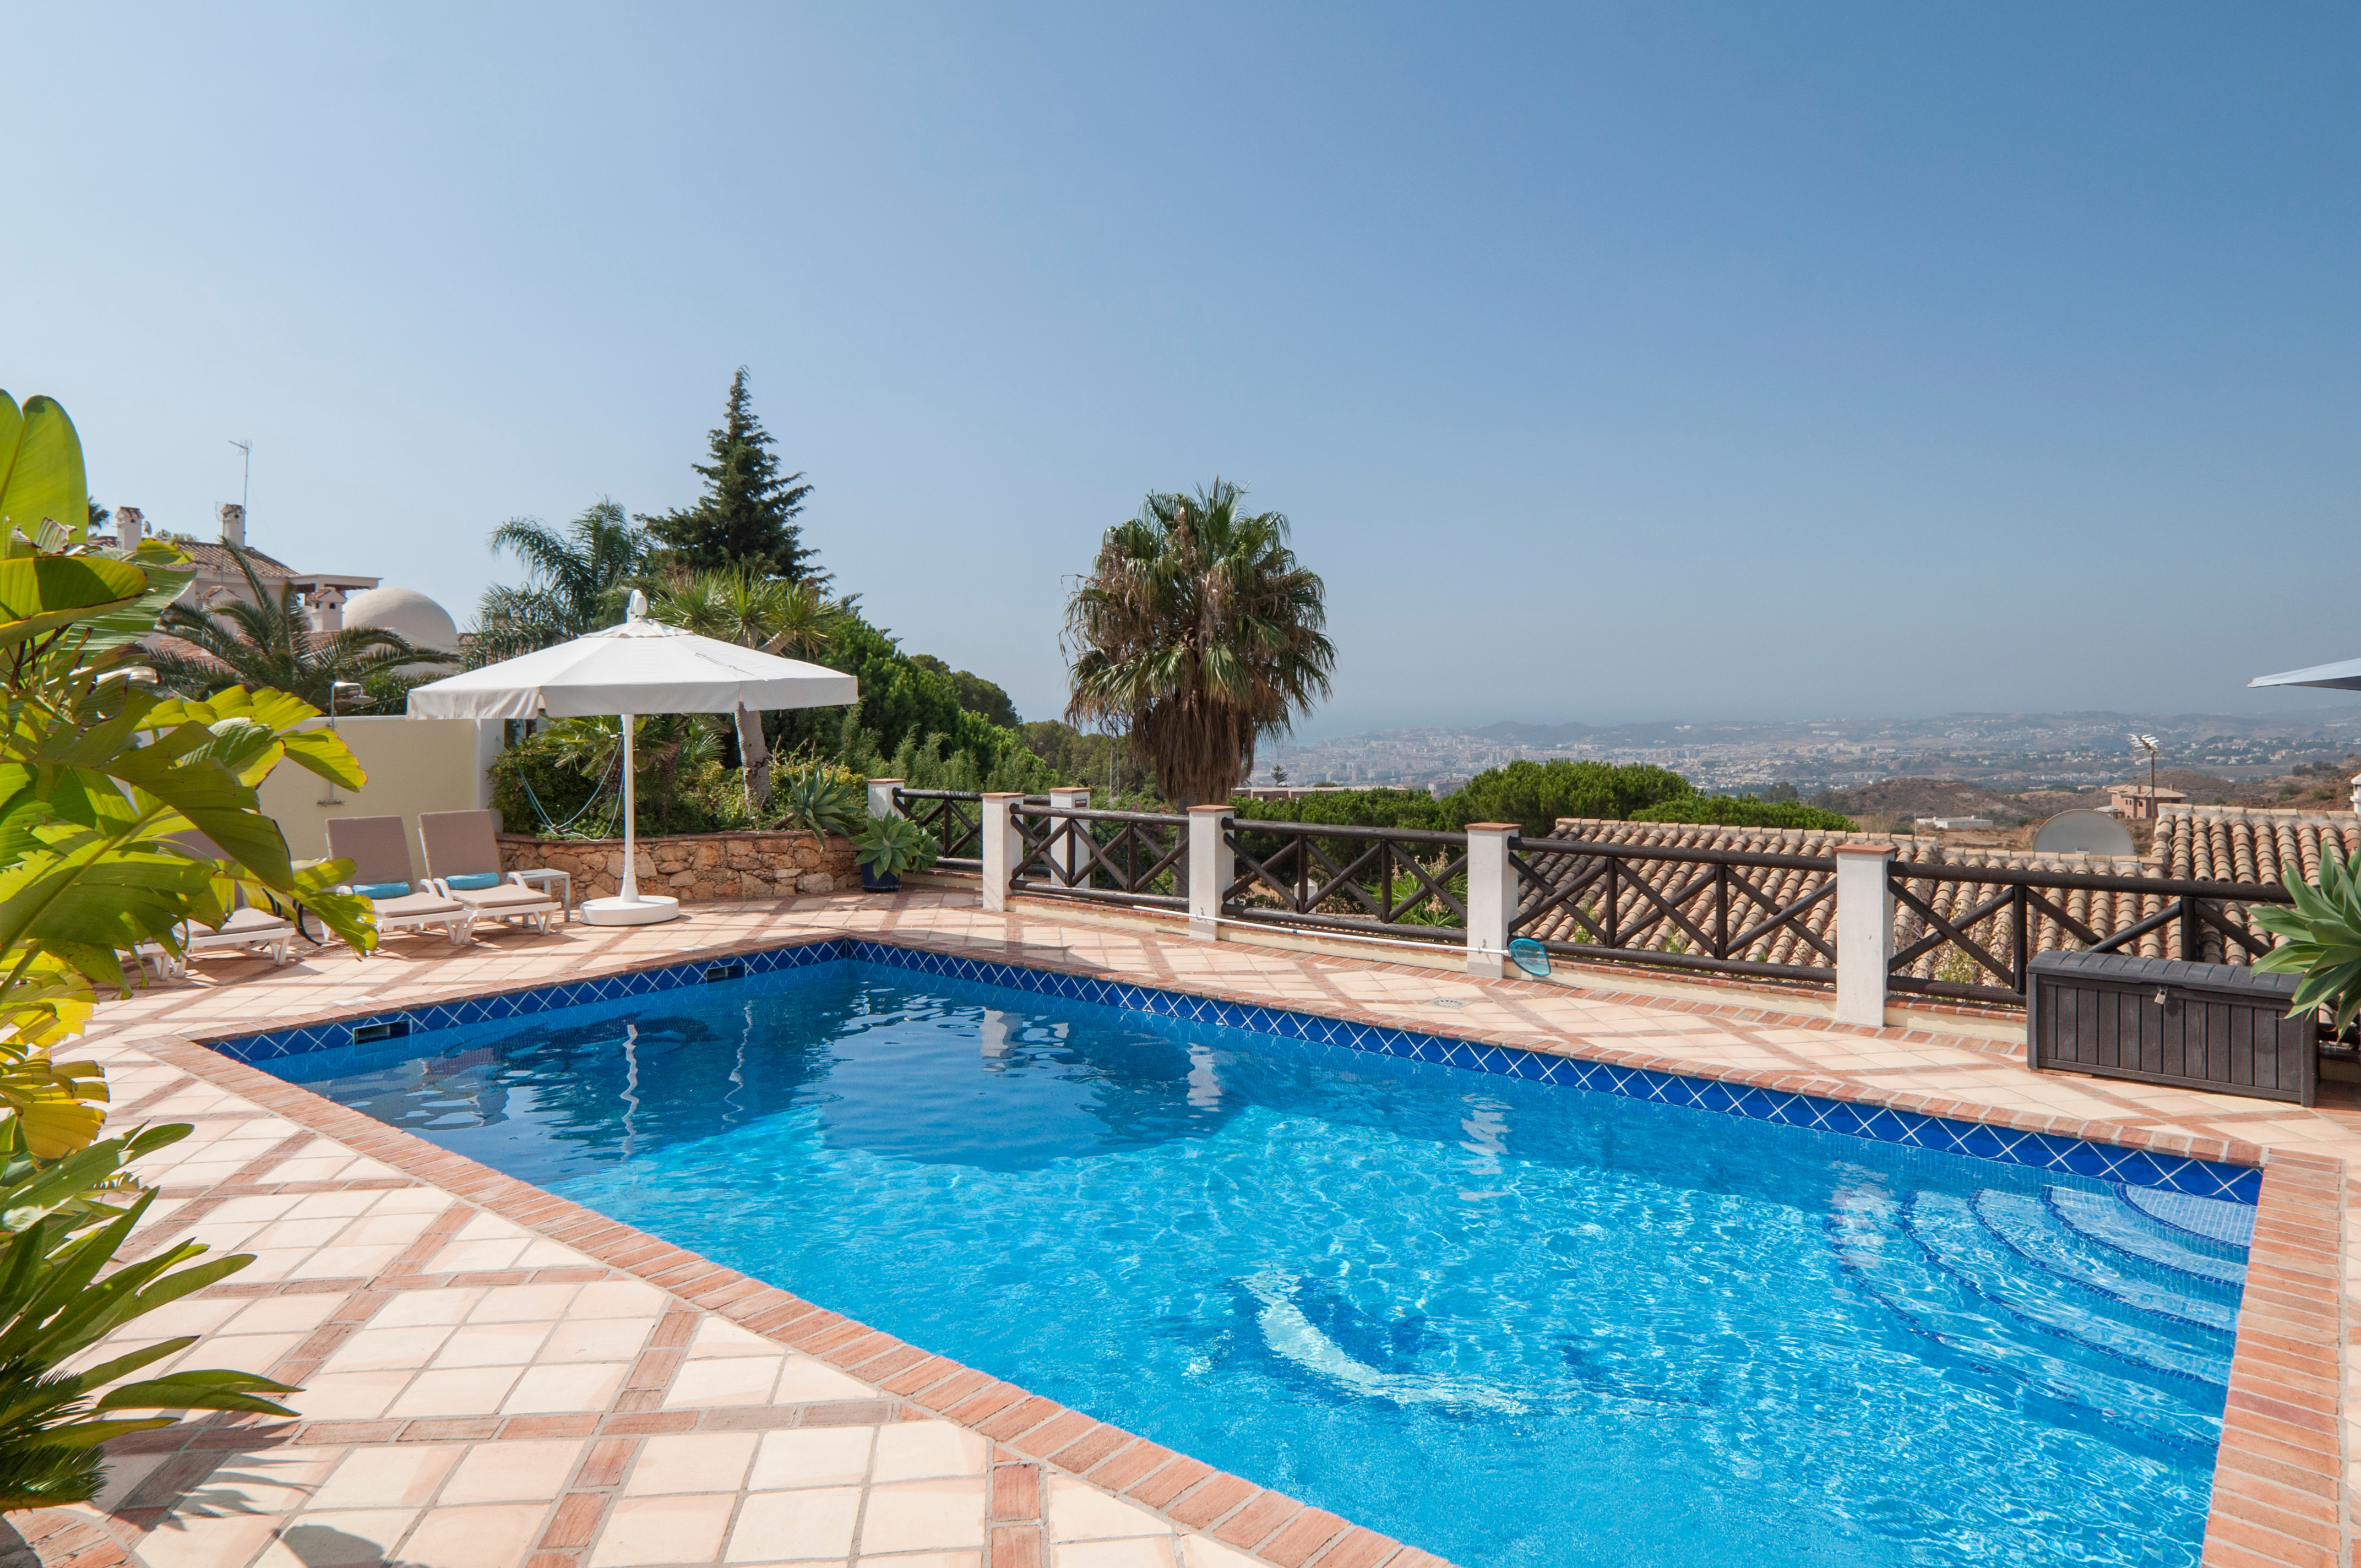 Property Image 2 - Fabulous Villa with Sea Views, Private Pool and Jacuzzi